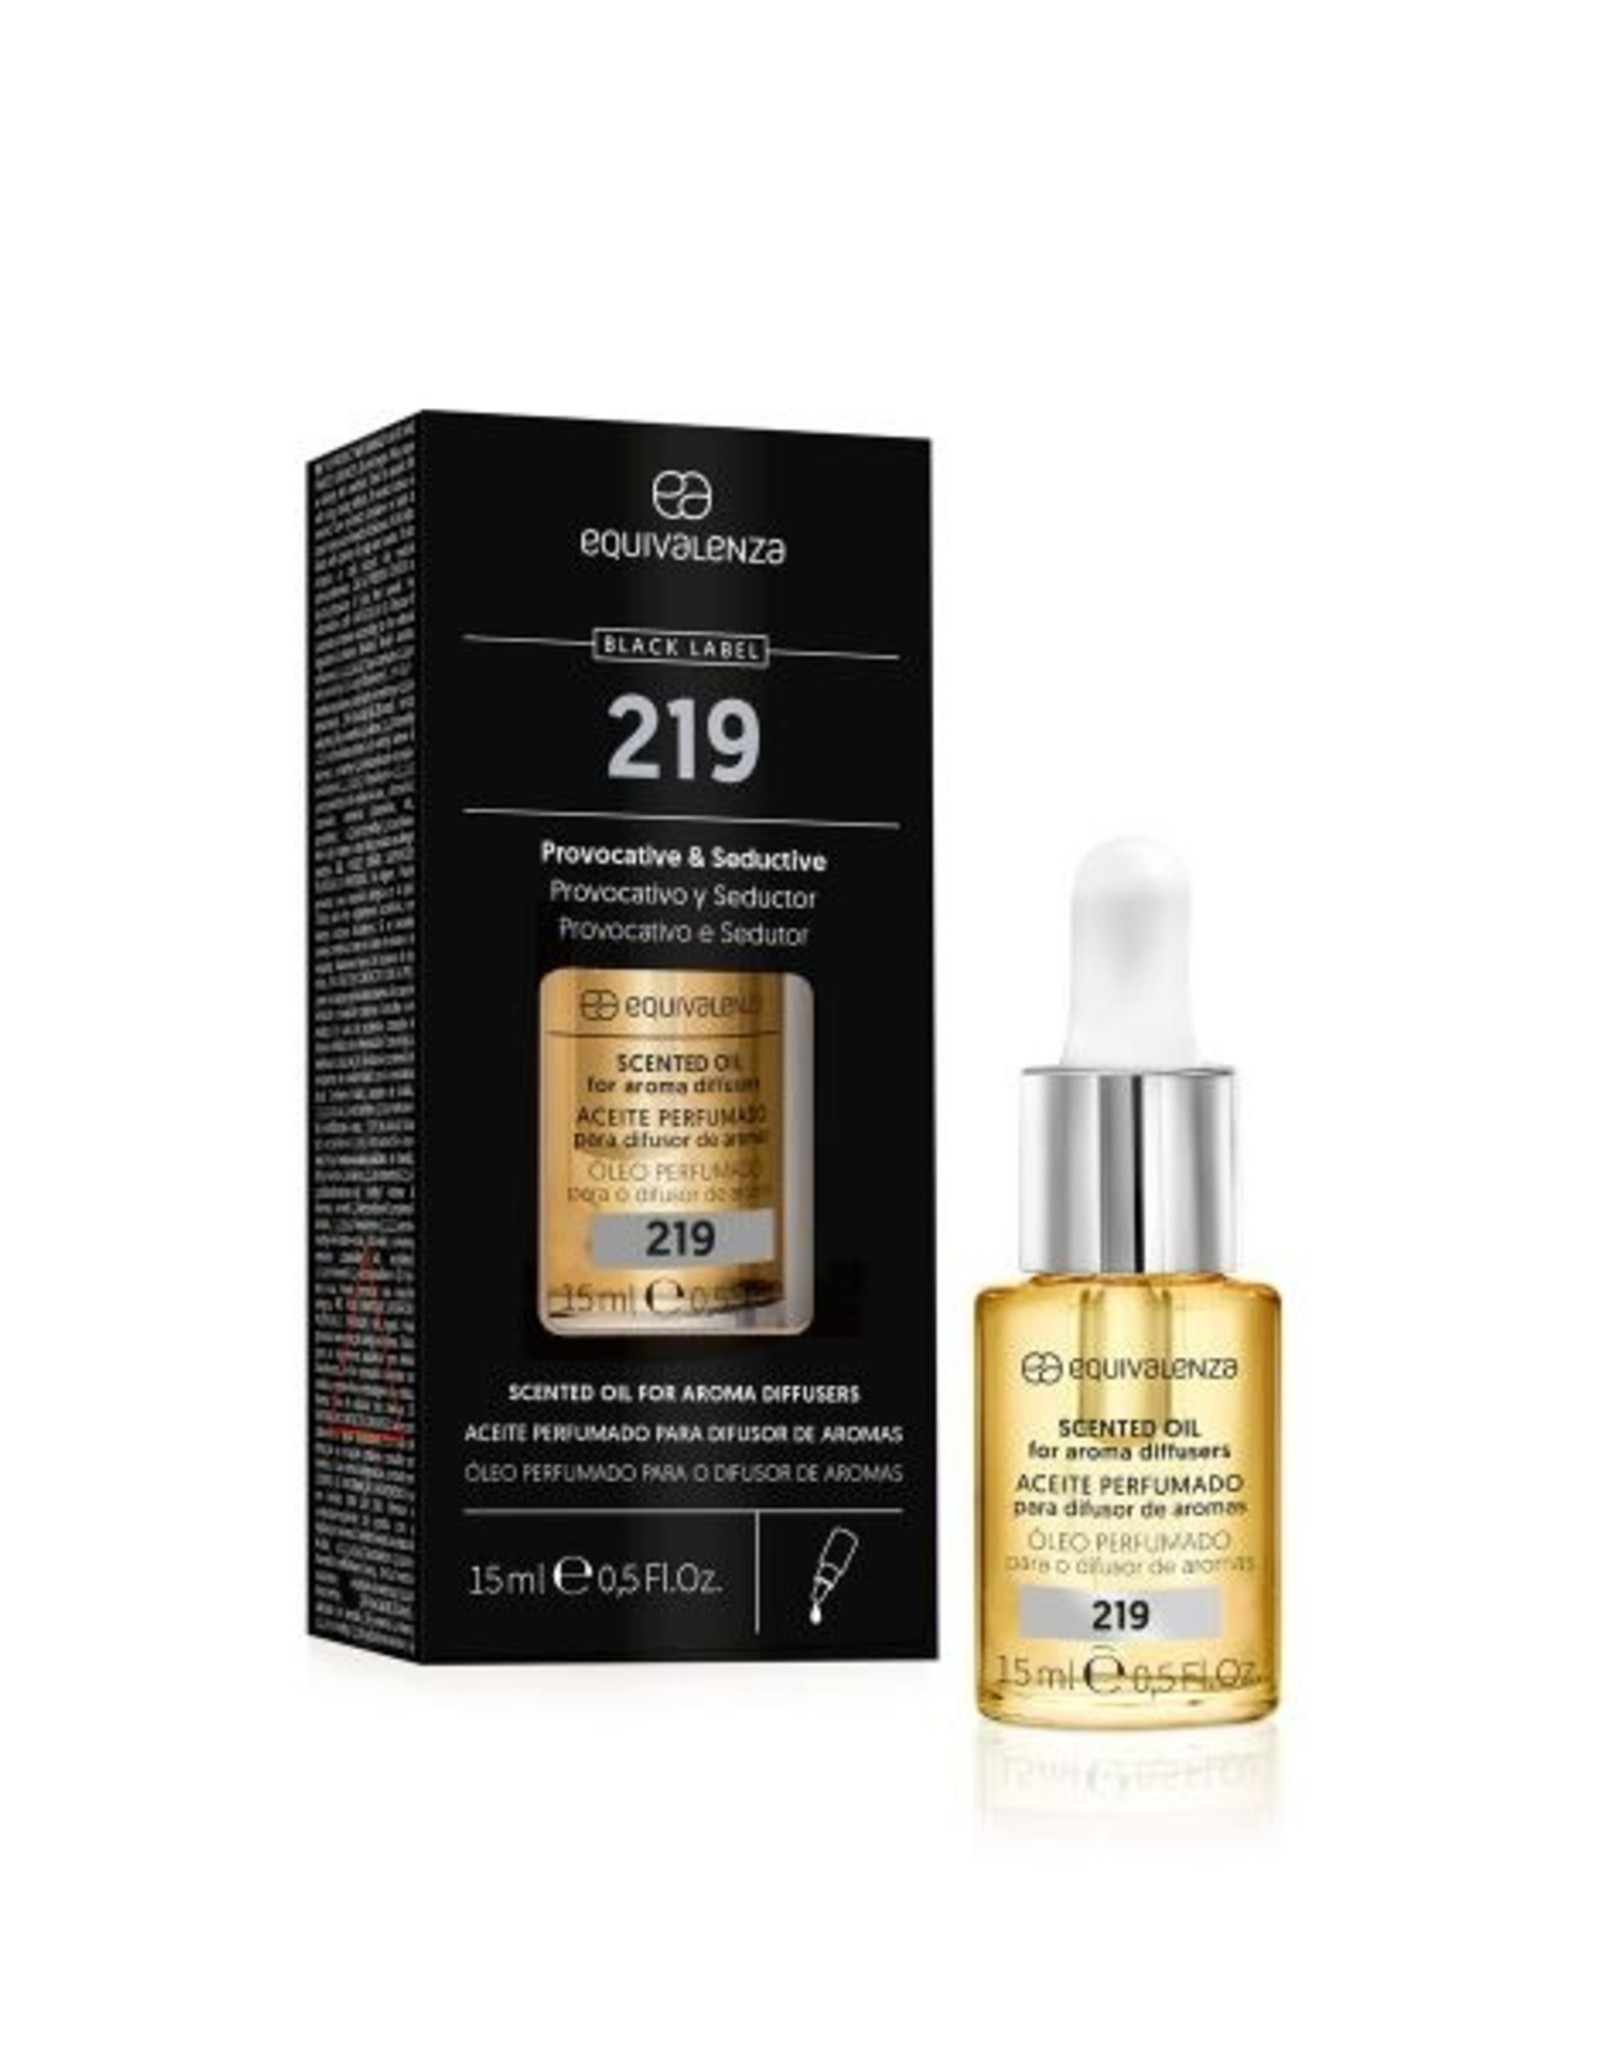 Equivalenza Essential Oil – Black Label nº 219